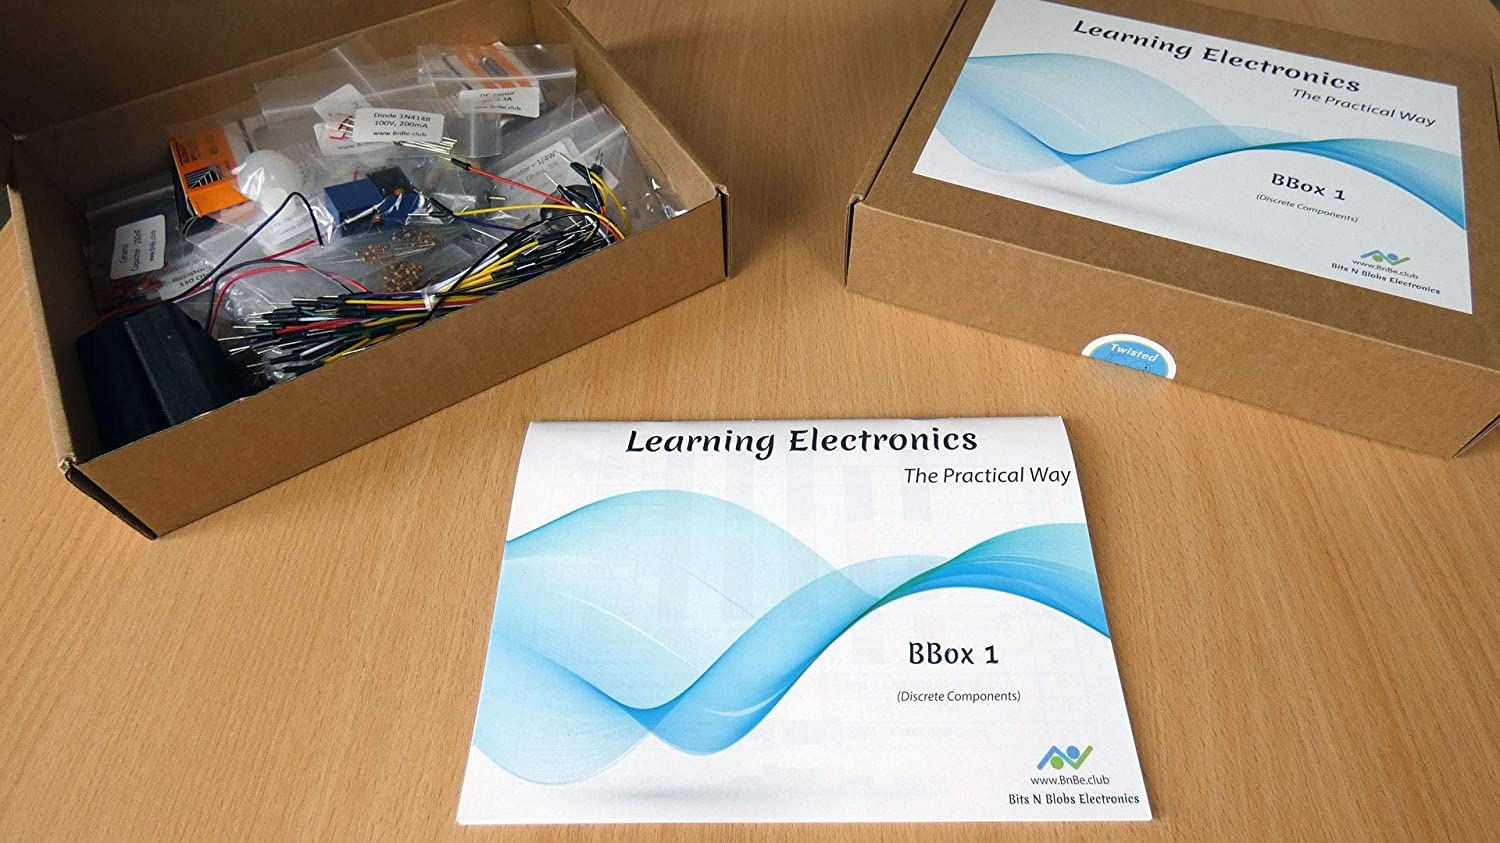 BBox 1 (Discrete Components) : Learn Electronics The Practical Way